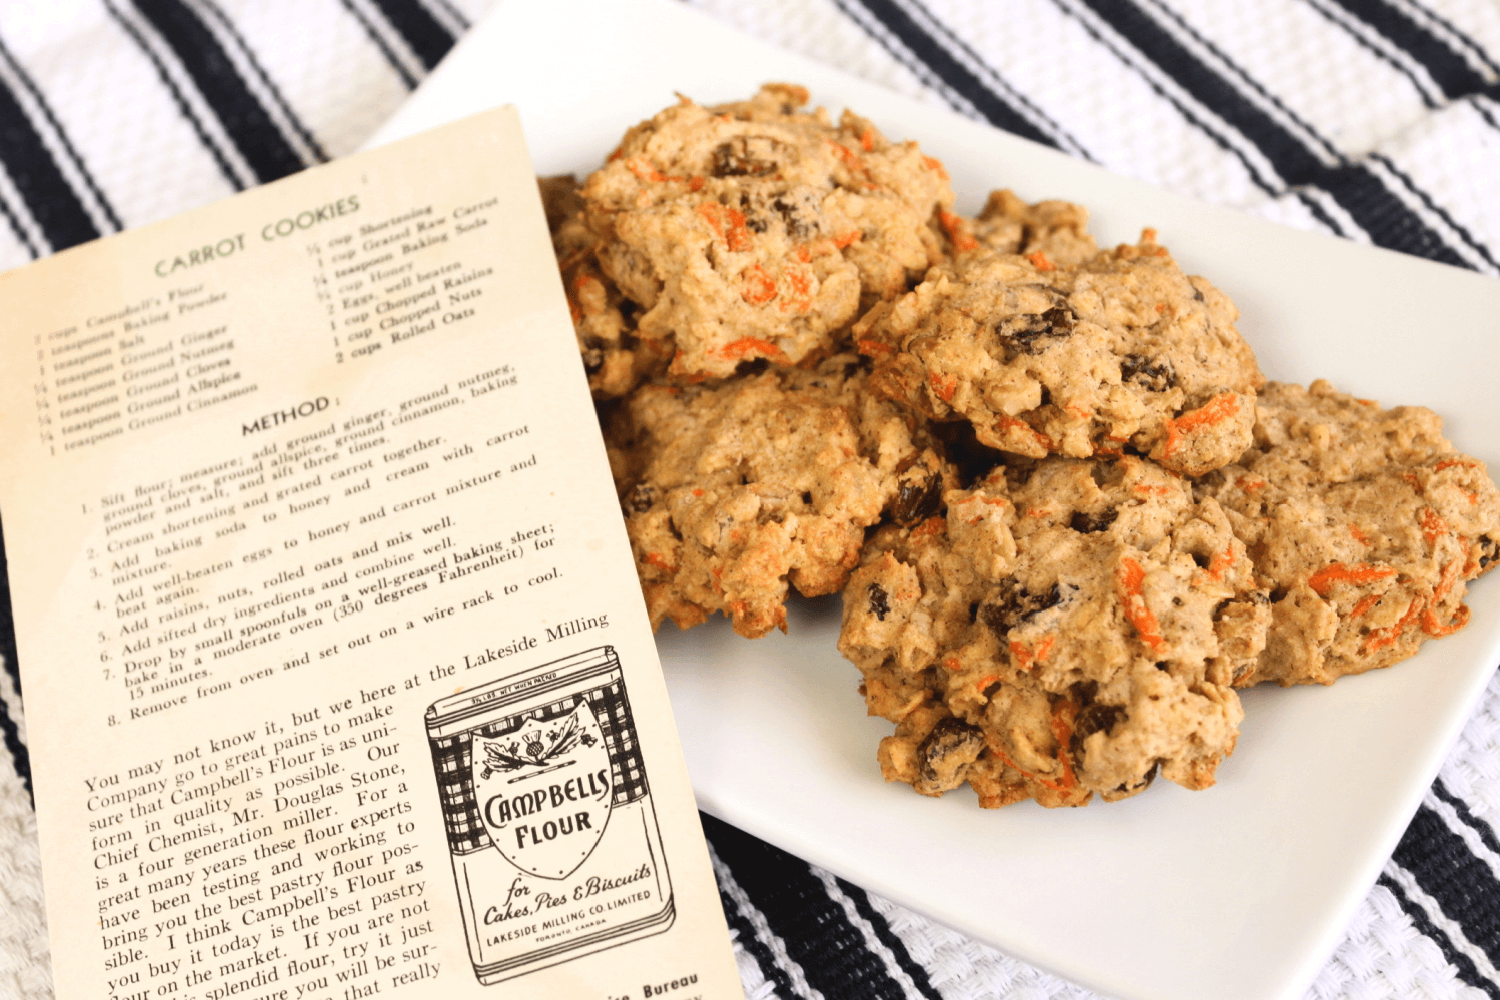 Plate of healthy carrot cookies on table with old newspaper bulletin